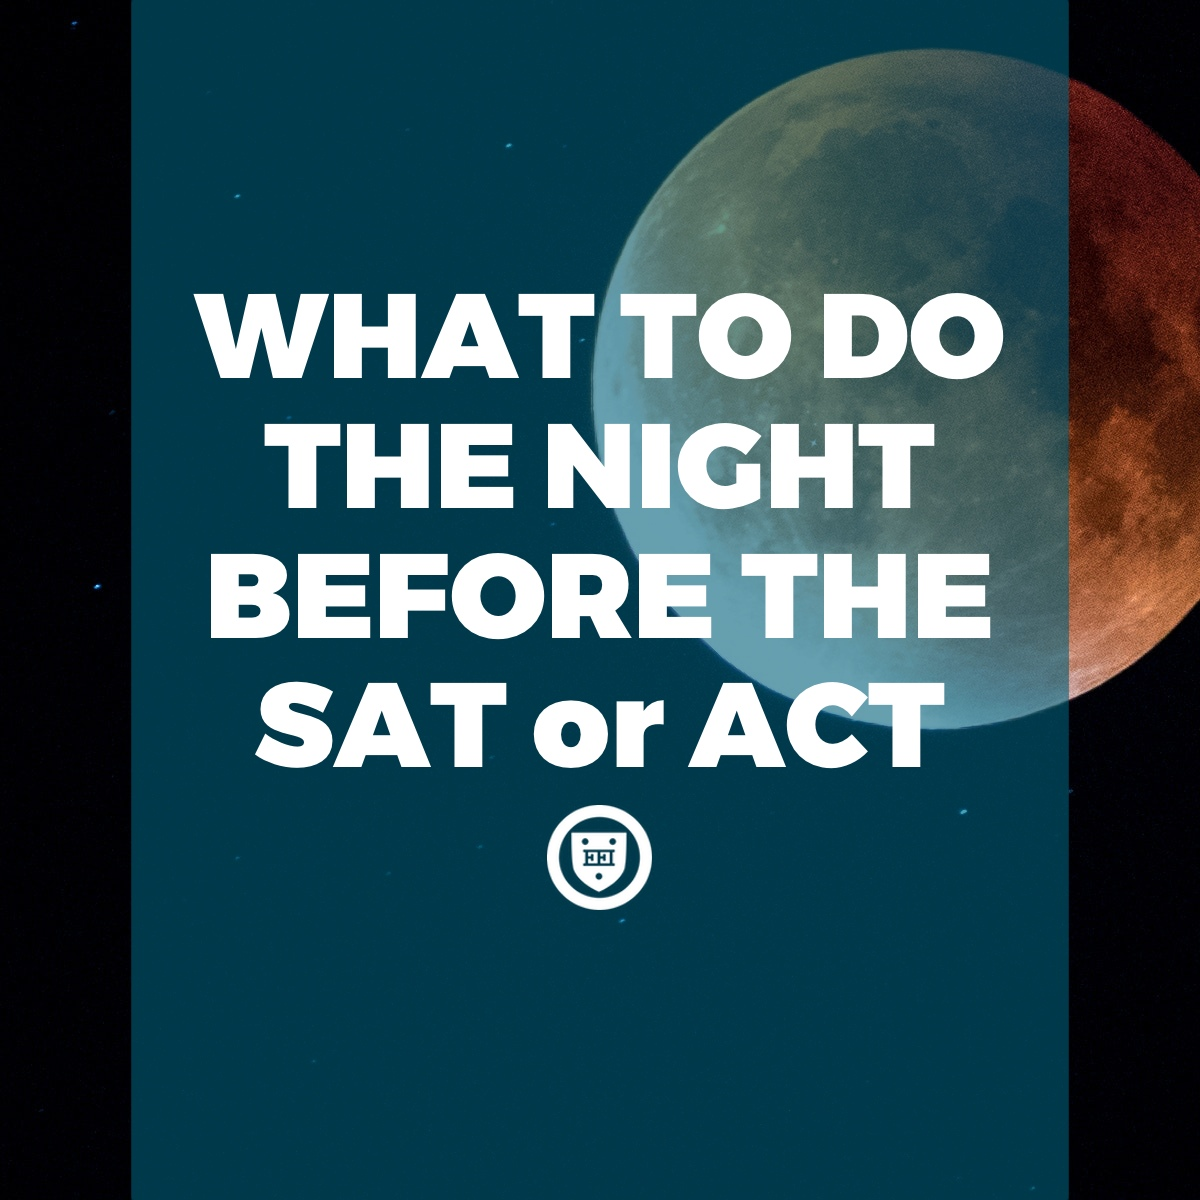 What to Do the Night Before the SAT or ACT